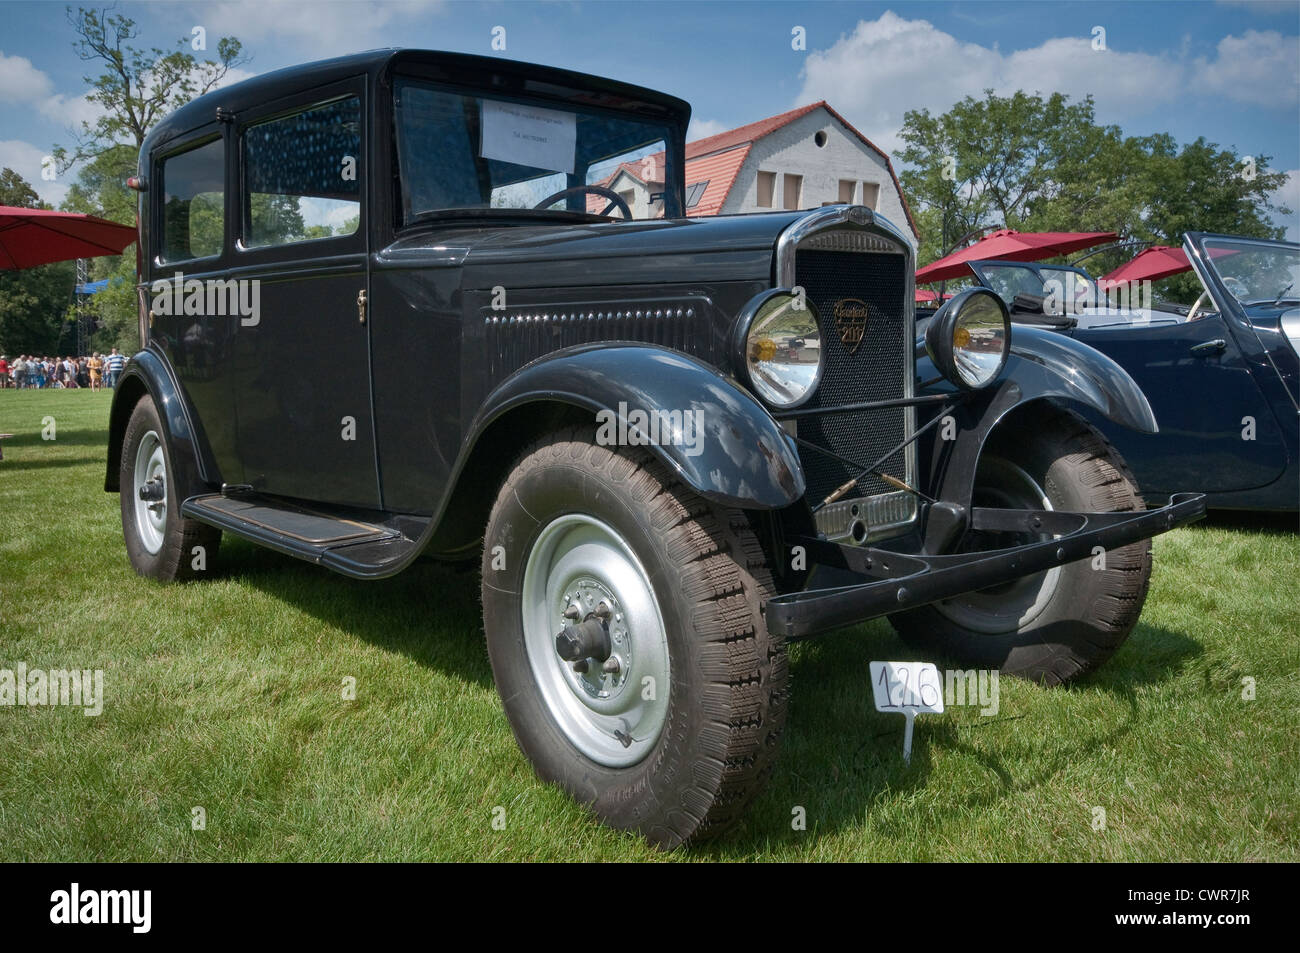 1930s Peugeot 201 at Motoclassic car show at Topacz Castle in Kobierzyce near Wroclaw, Lower Silesia, Poland - Stock Image